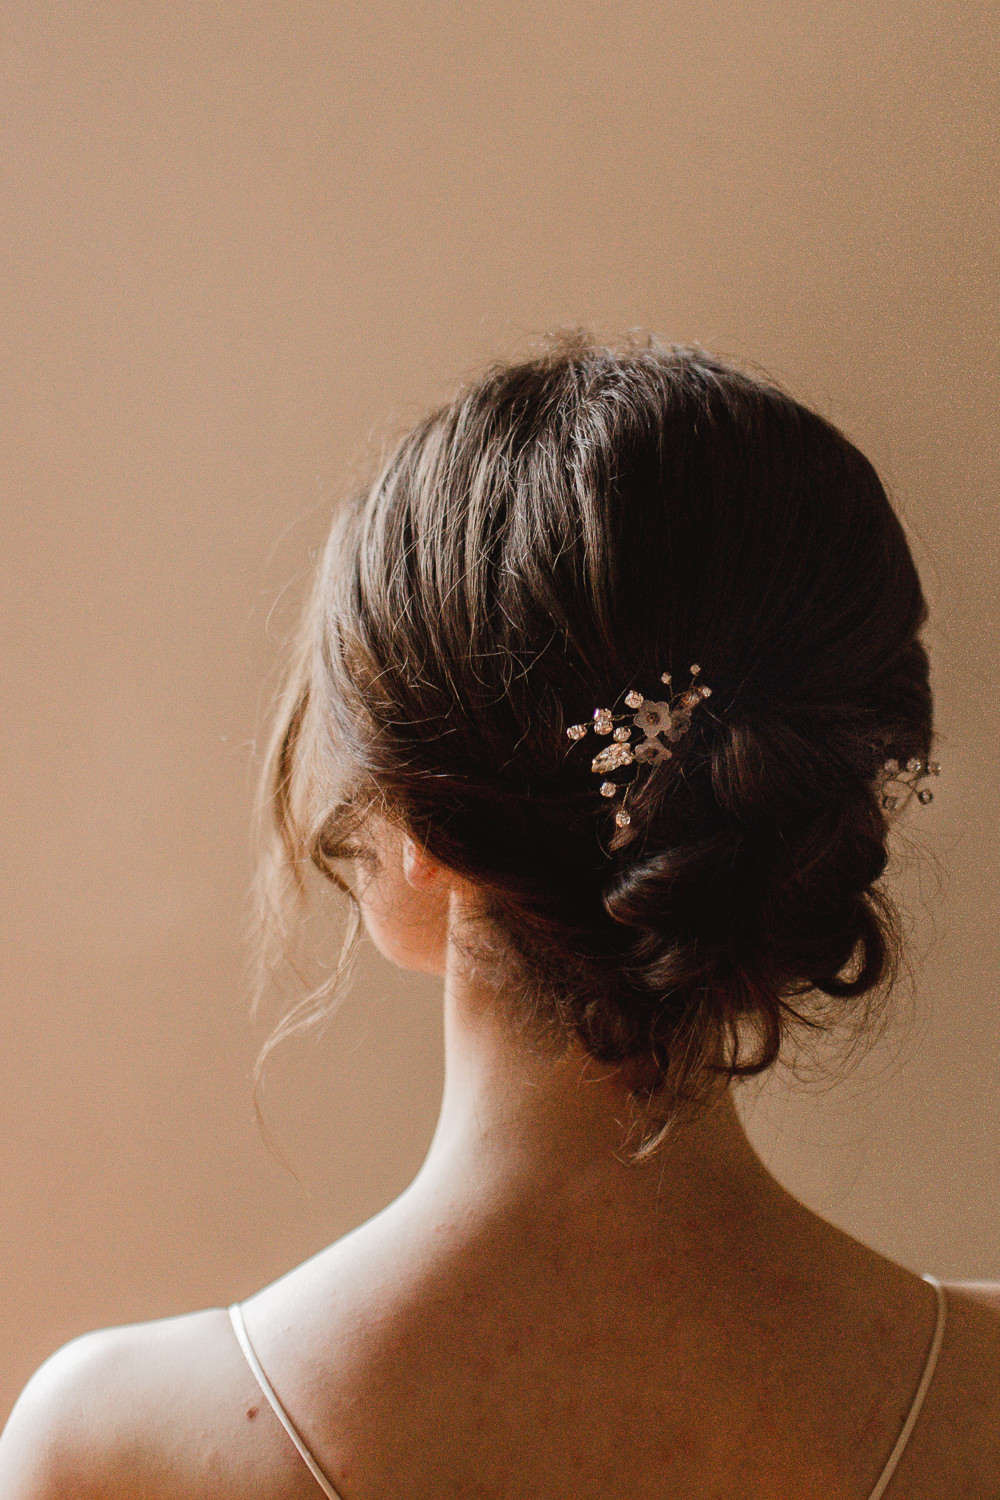 Bridesmaids Bridesmaid Hair Style Up Do Bun Bride Bridal Elopement Wedding Ideas Oilvejoy Photography